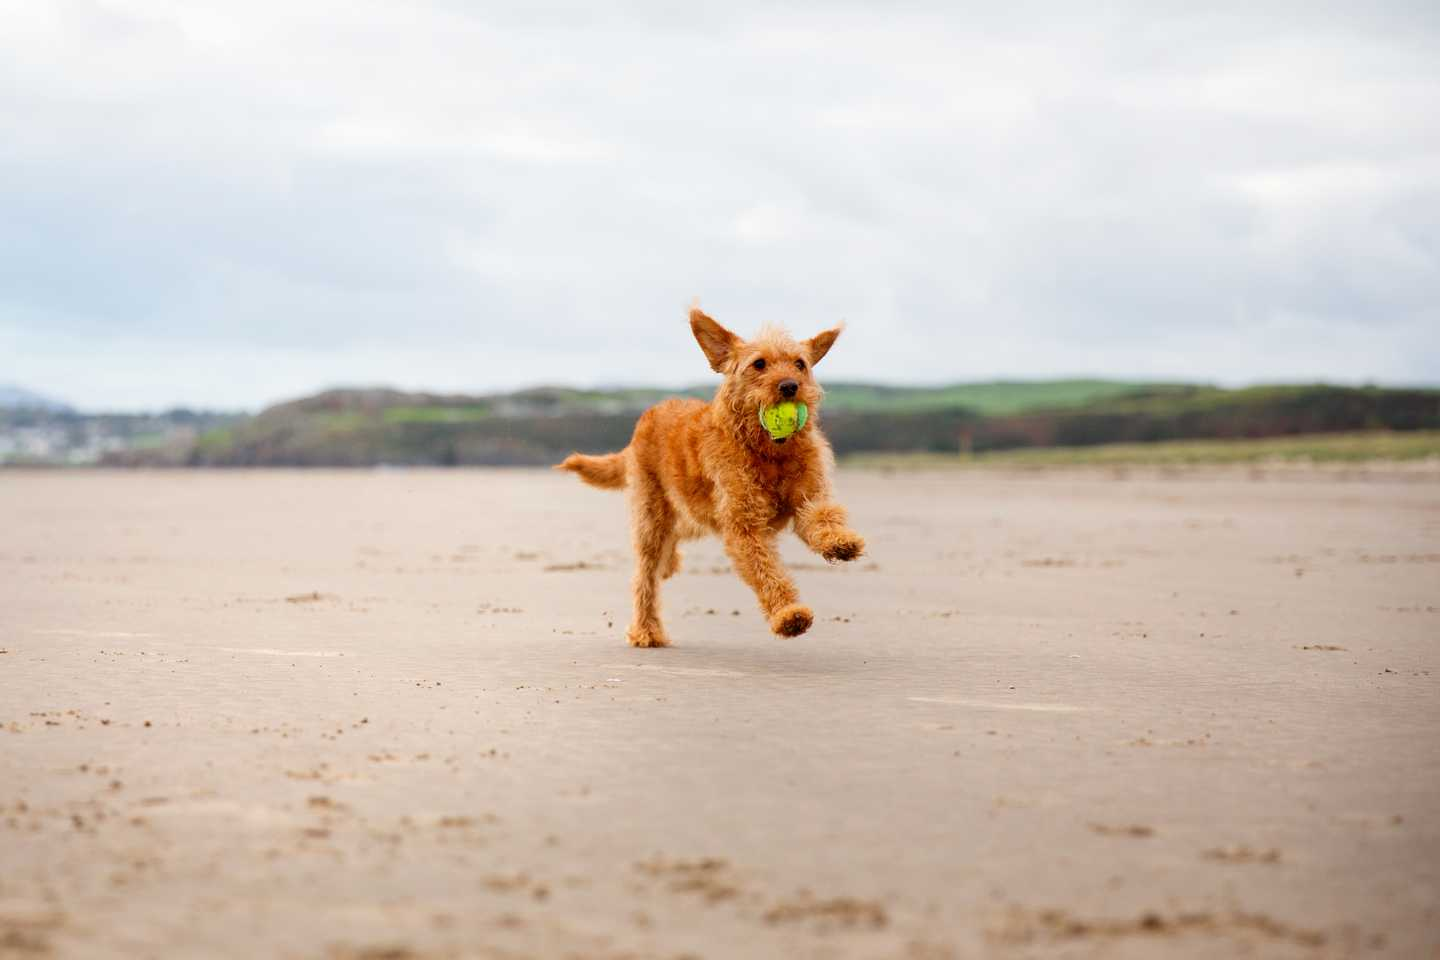 Dog running on the beach